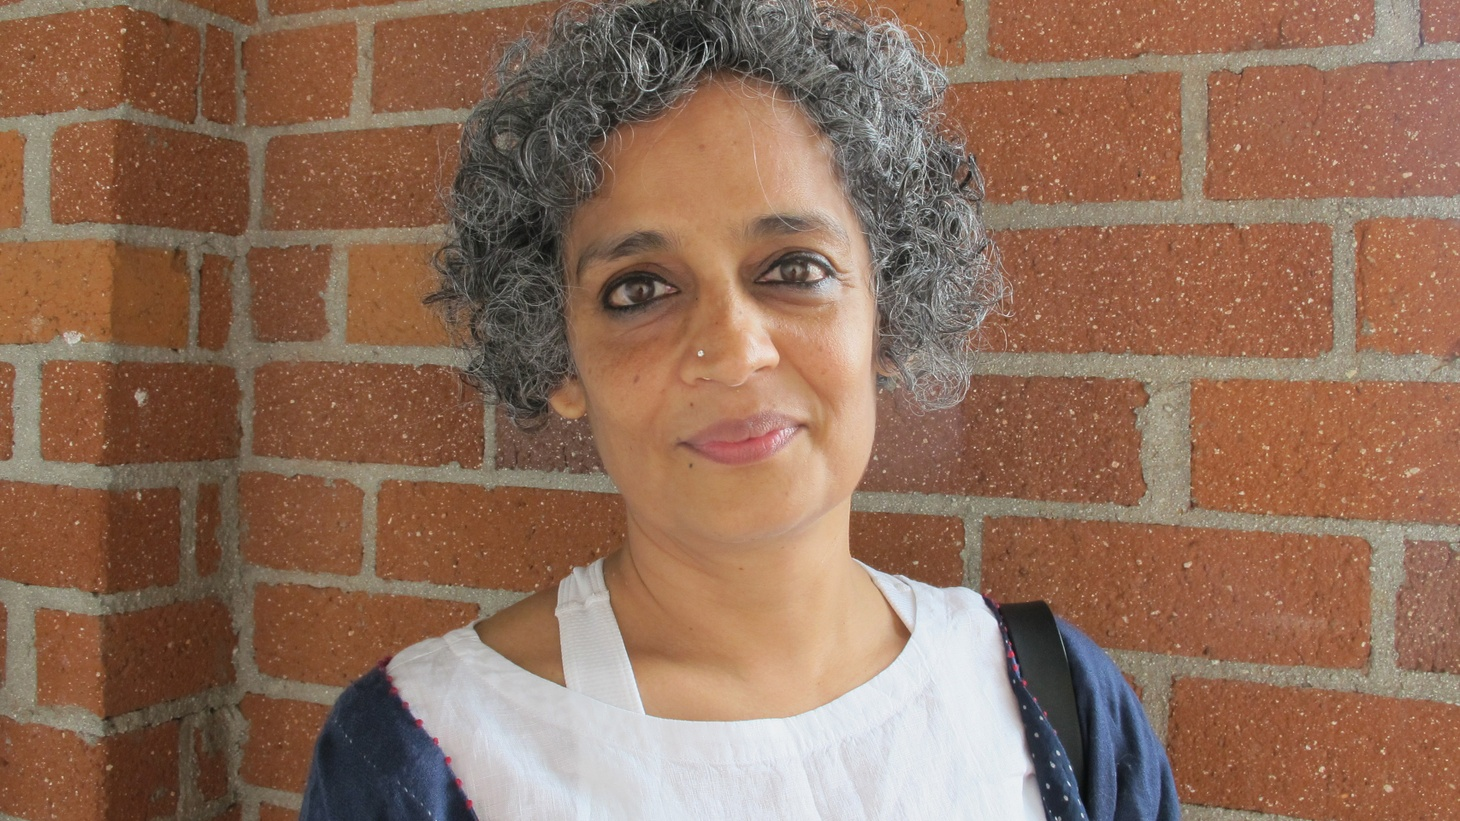 Trained as an architect, Roy reveals that she structured her novel The Ministry of Utmost Happiness like an Indian metropolis where ancient neighborhoods collide with modern urban planning.